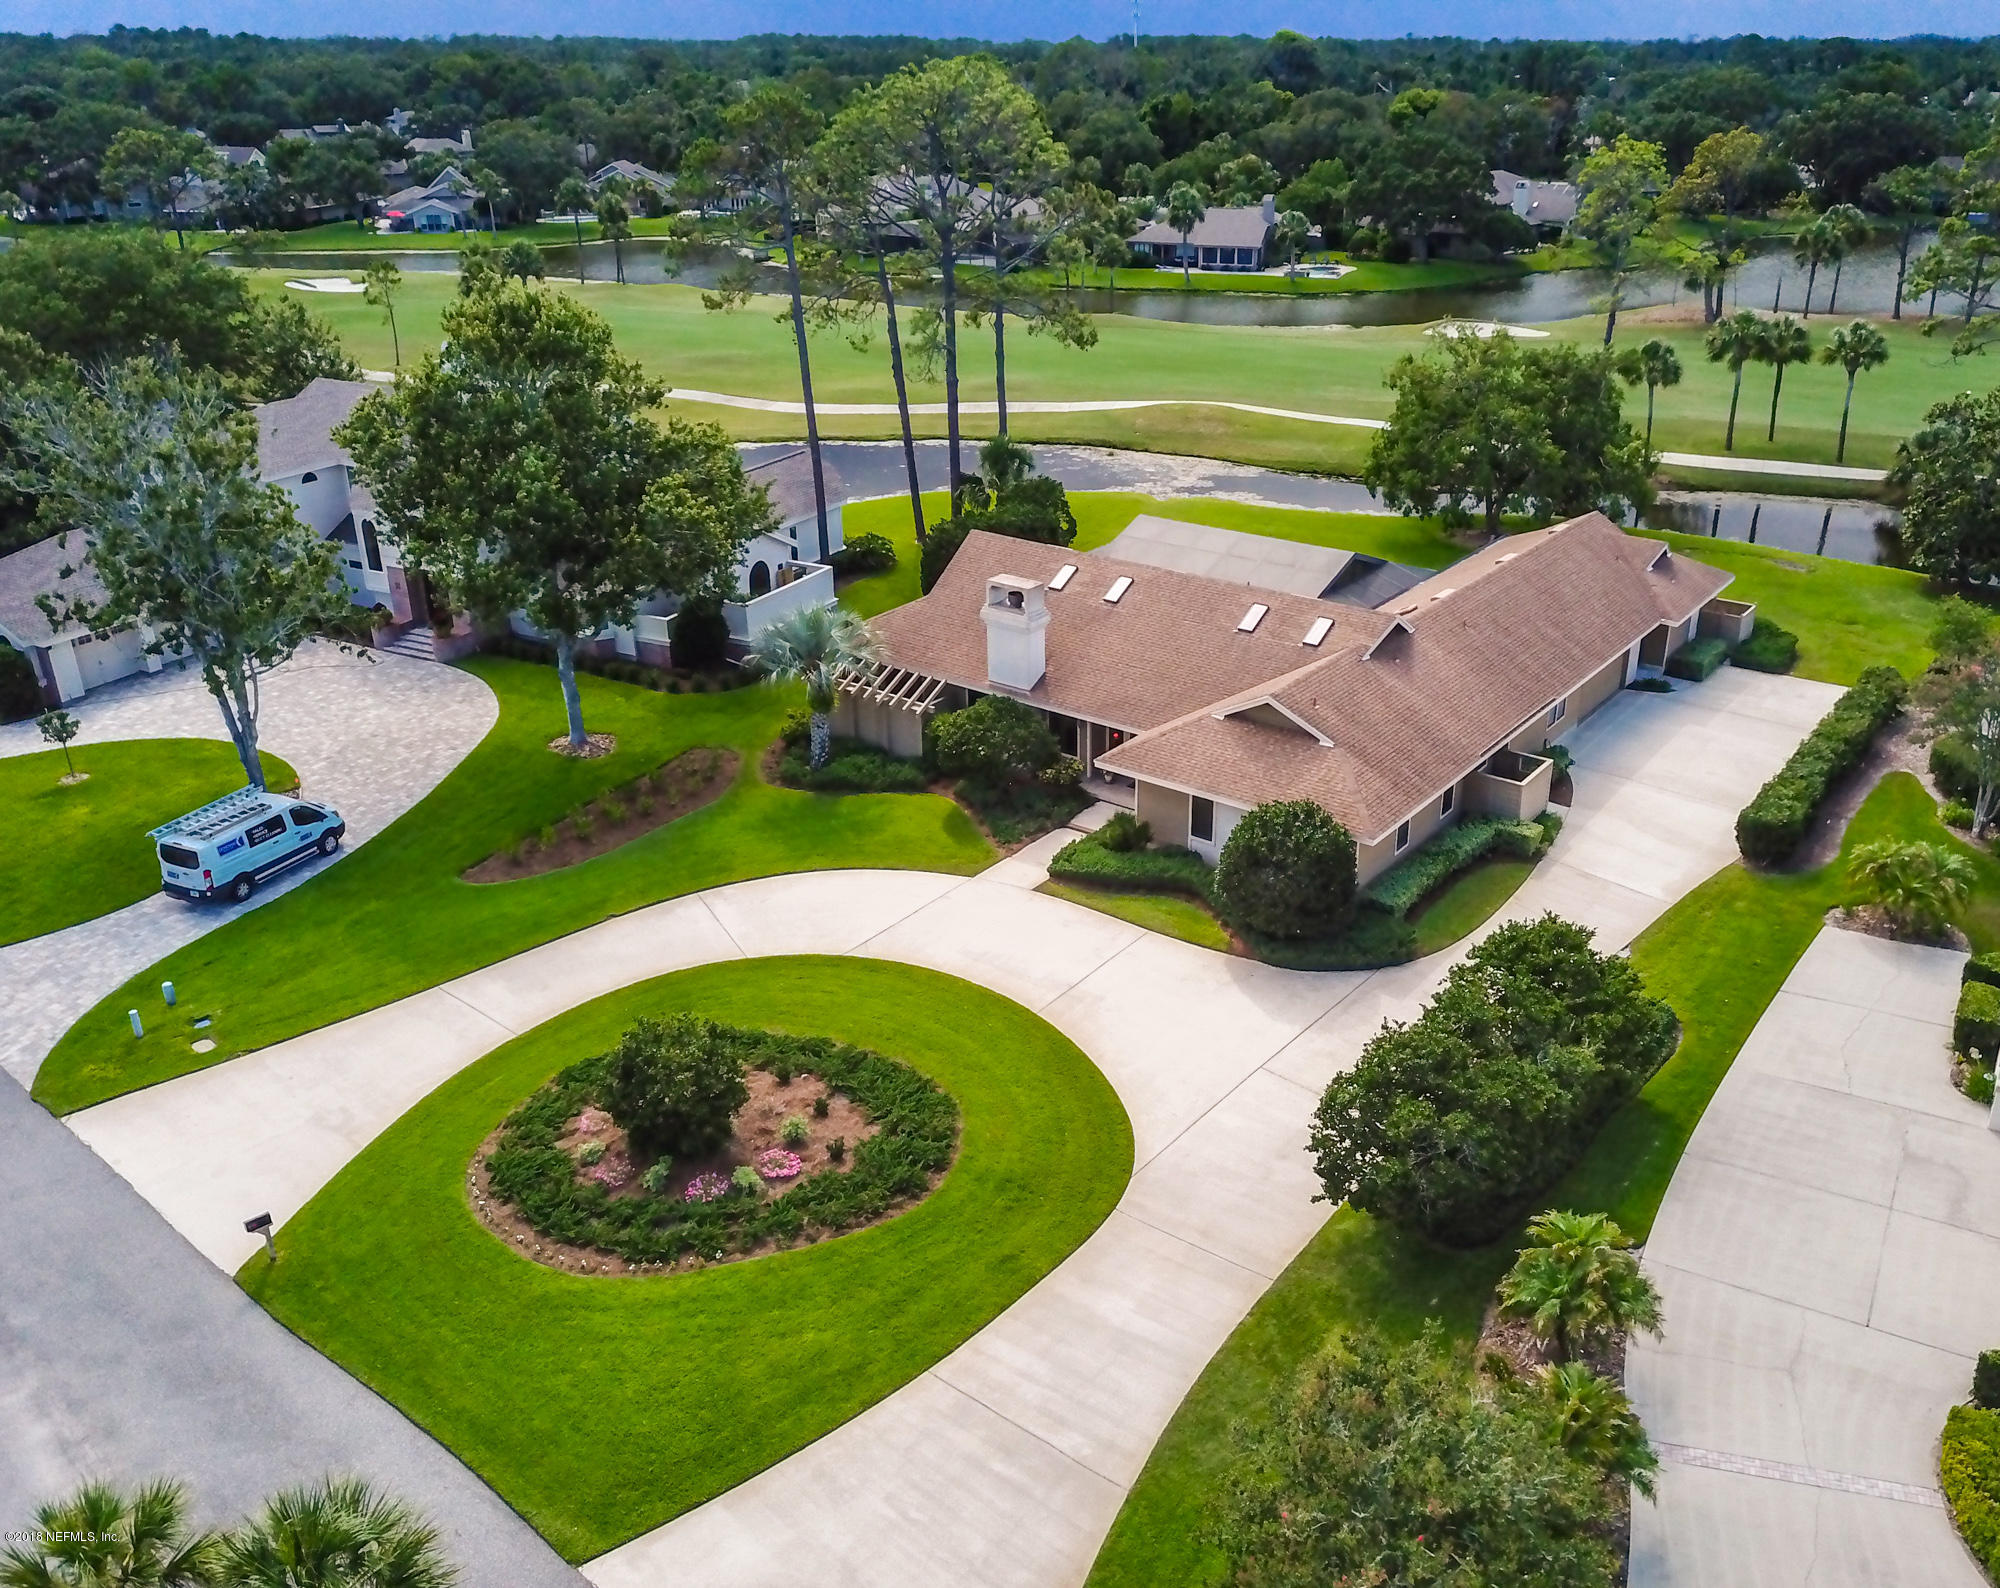 3170 TIMBERLAKE, PONTE VEDRA BEACH, FLORIDA 32082, 4 Bedrooms Bedrooms, ,4 BathroomsBathrooms,Residential - single family,For sale,TIMBERLAKE,943129